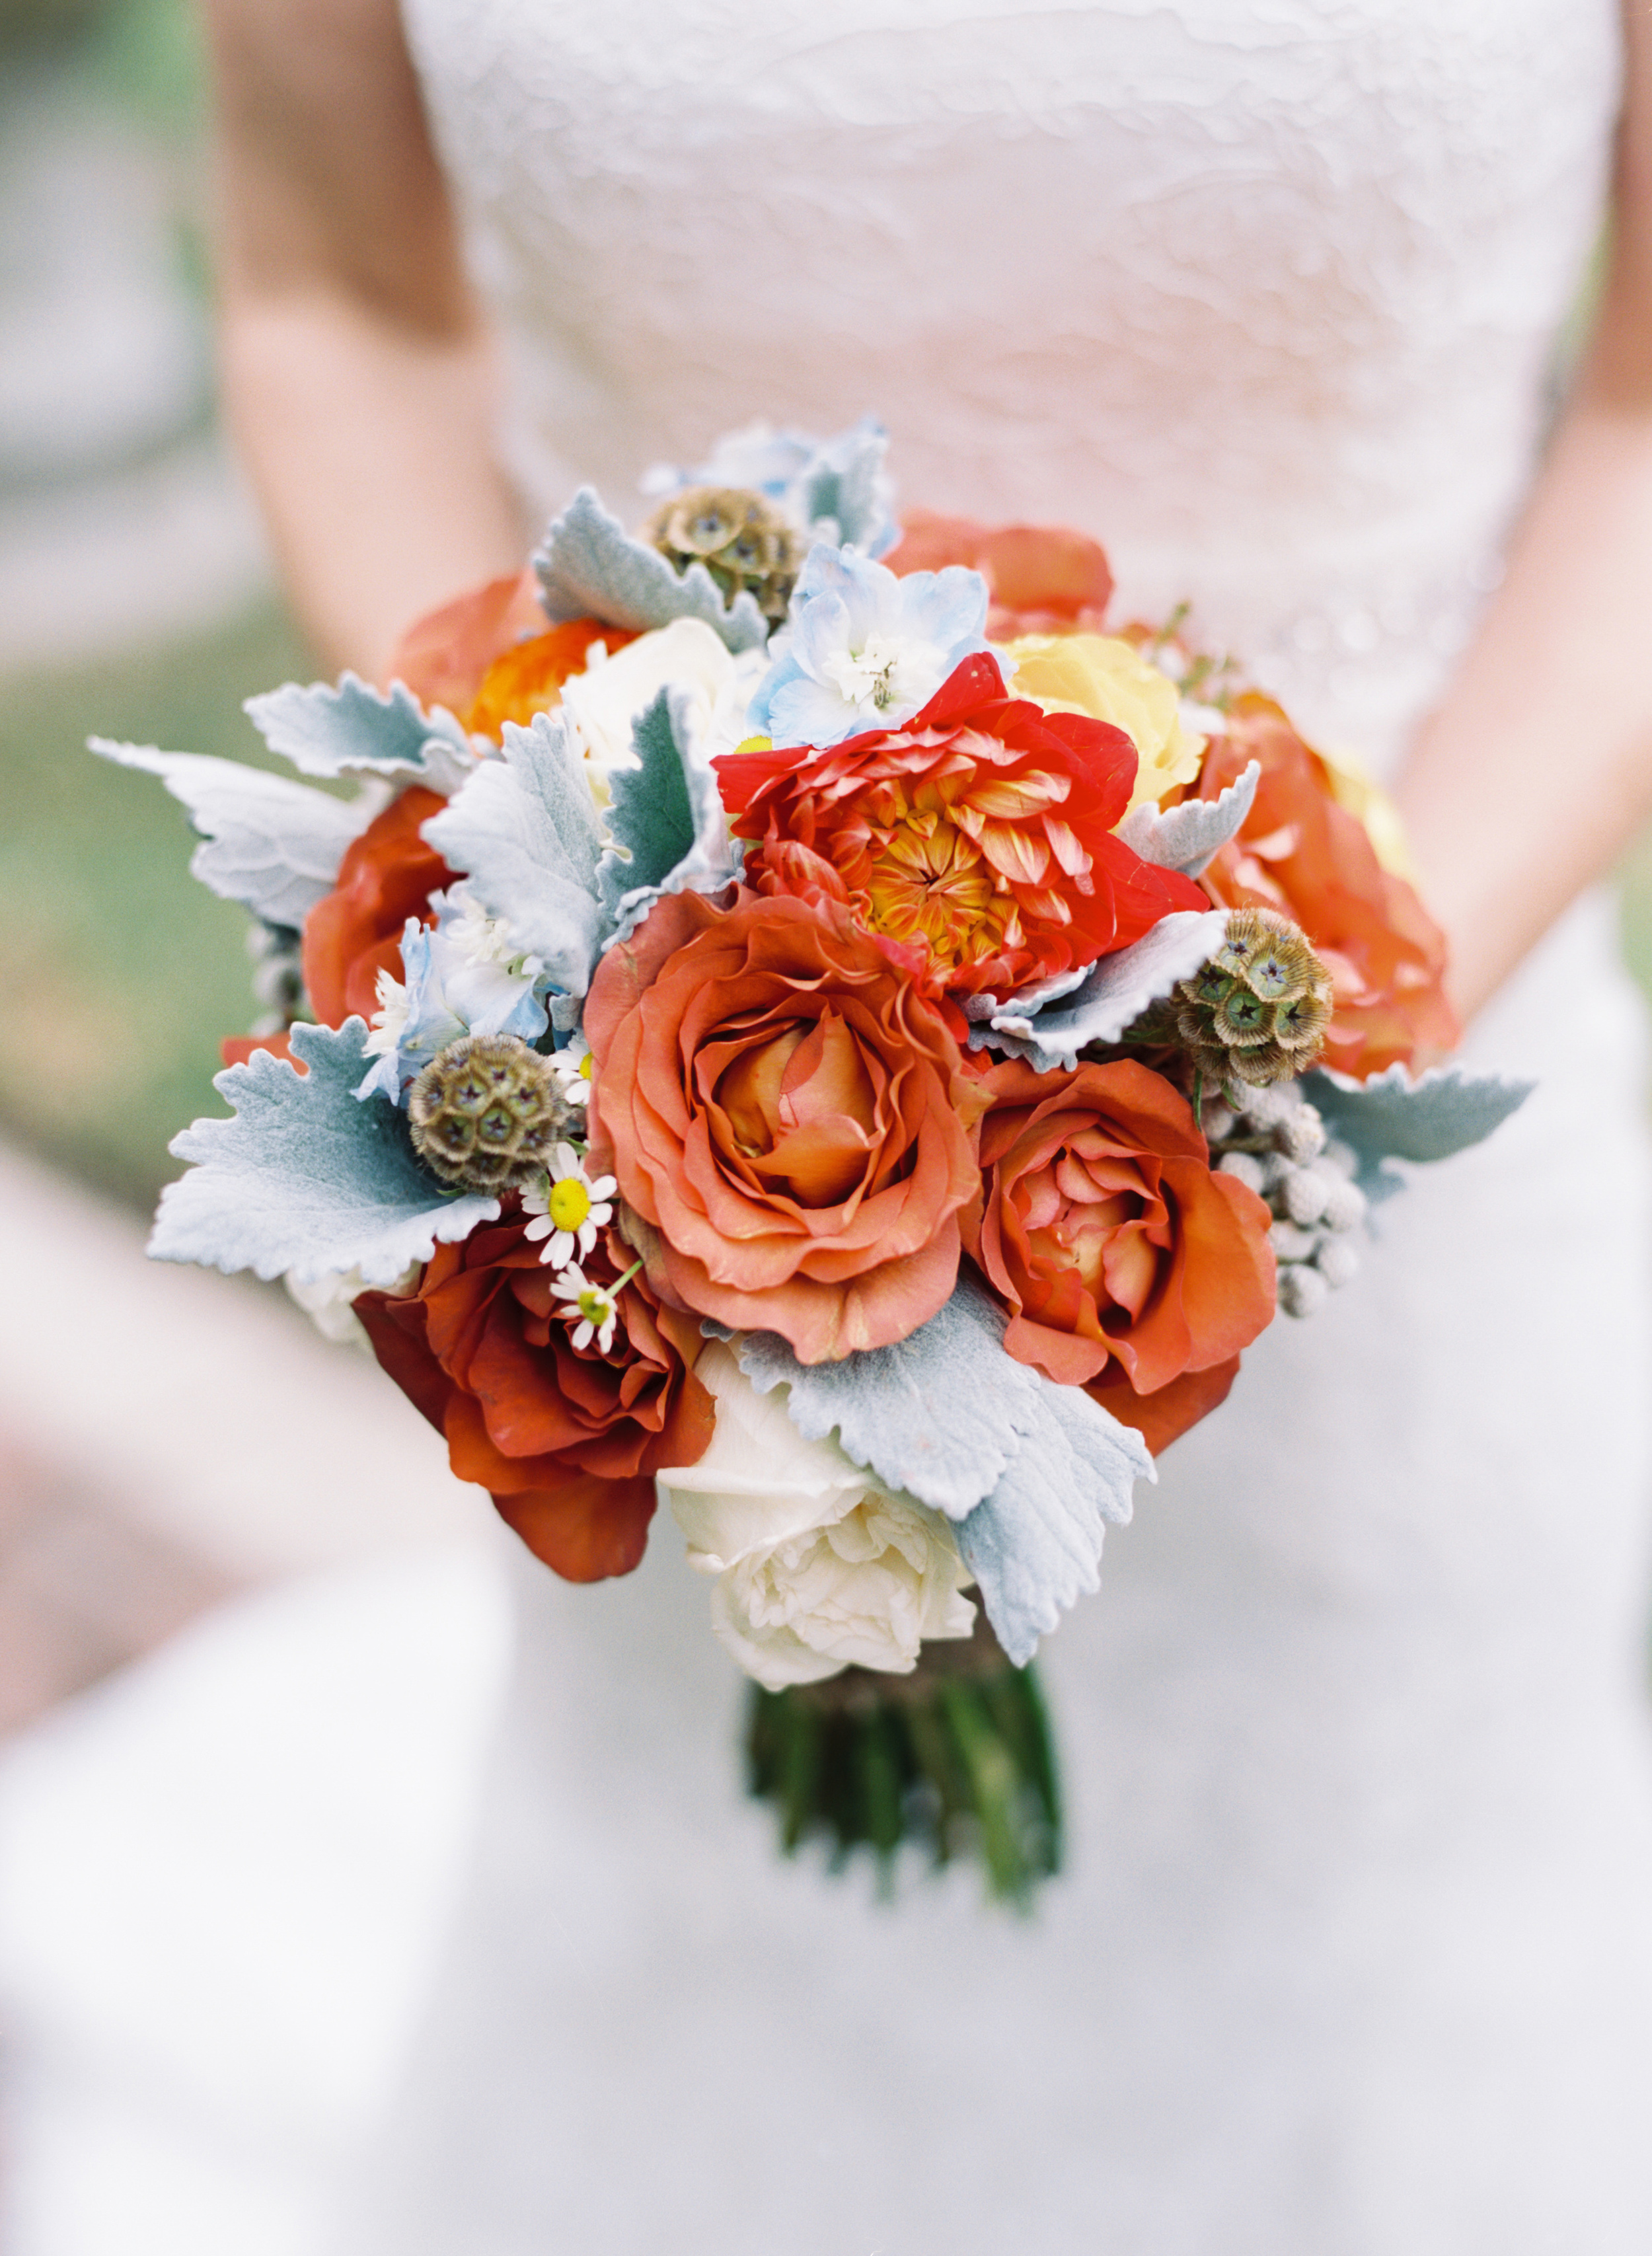 Houston Wedding // Flowers by Rosemary & Finch Floral Design // Photos by Austin Gros